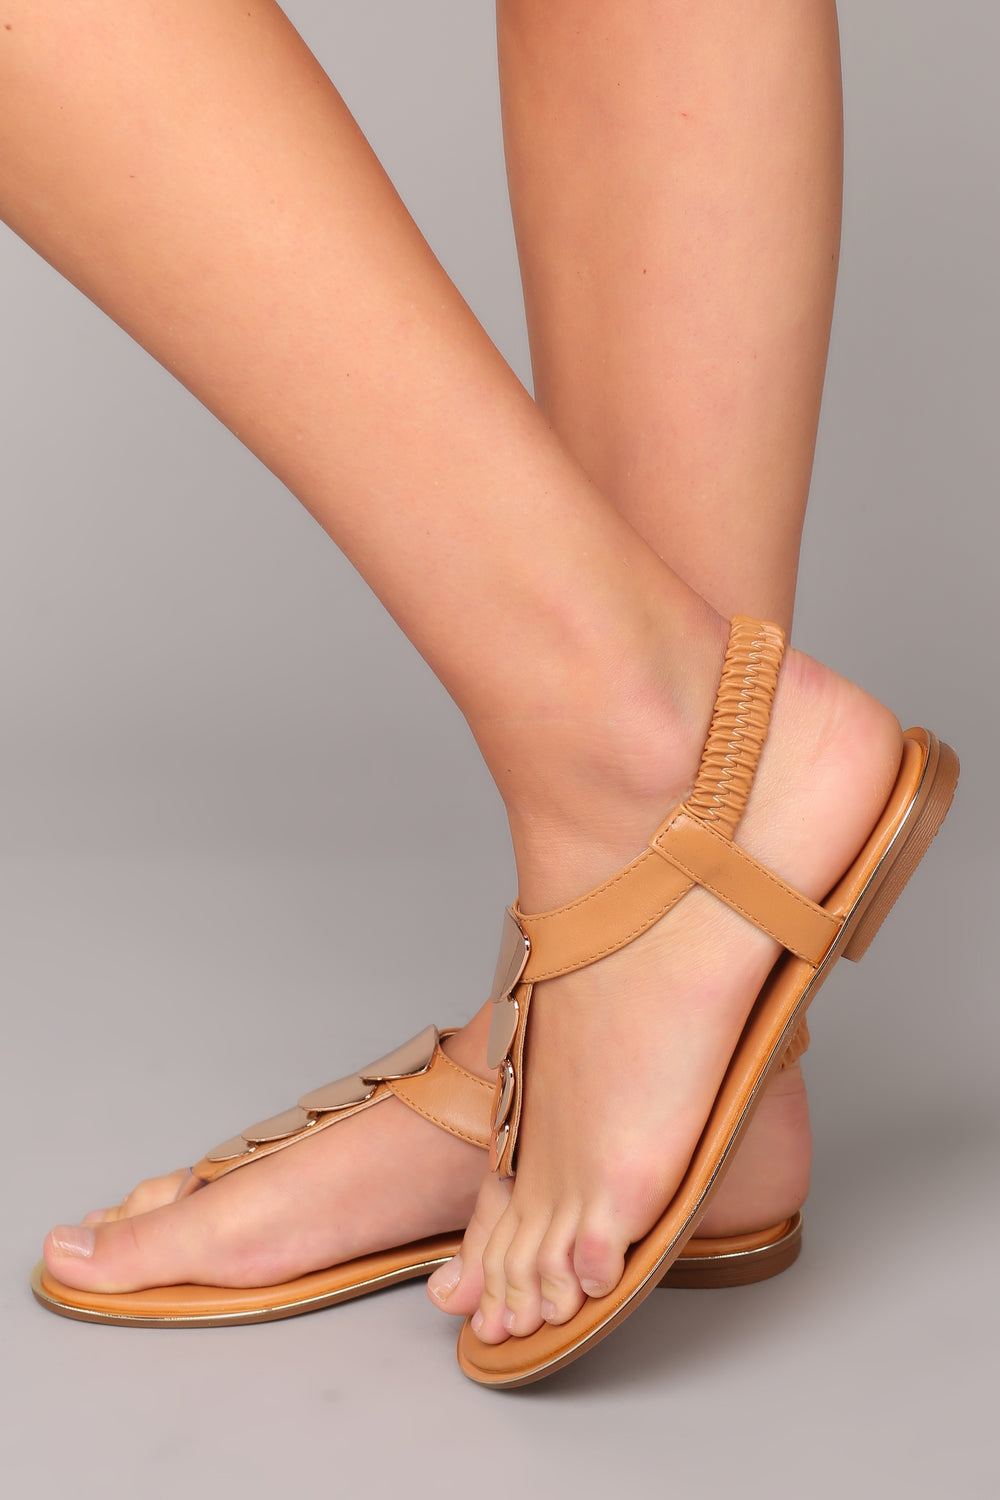 All Gold Sandal - Tan